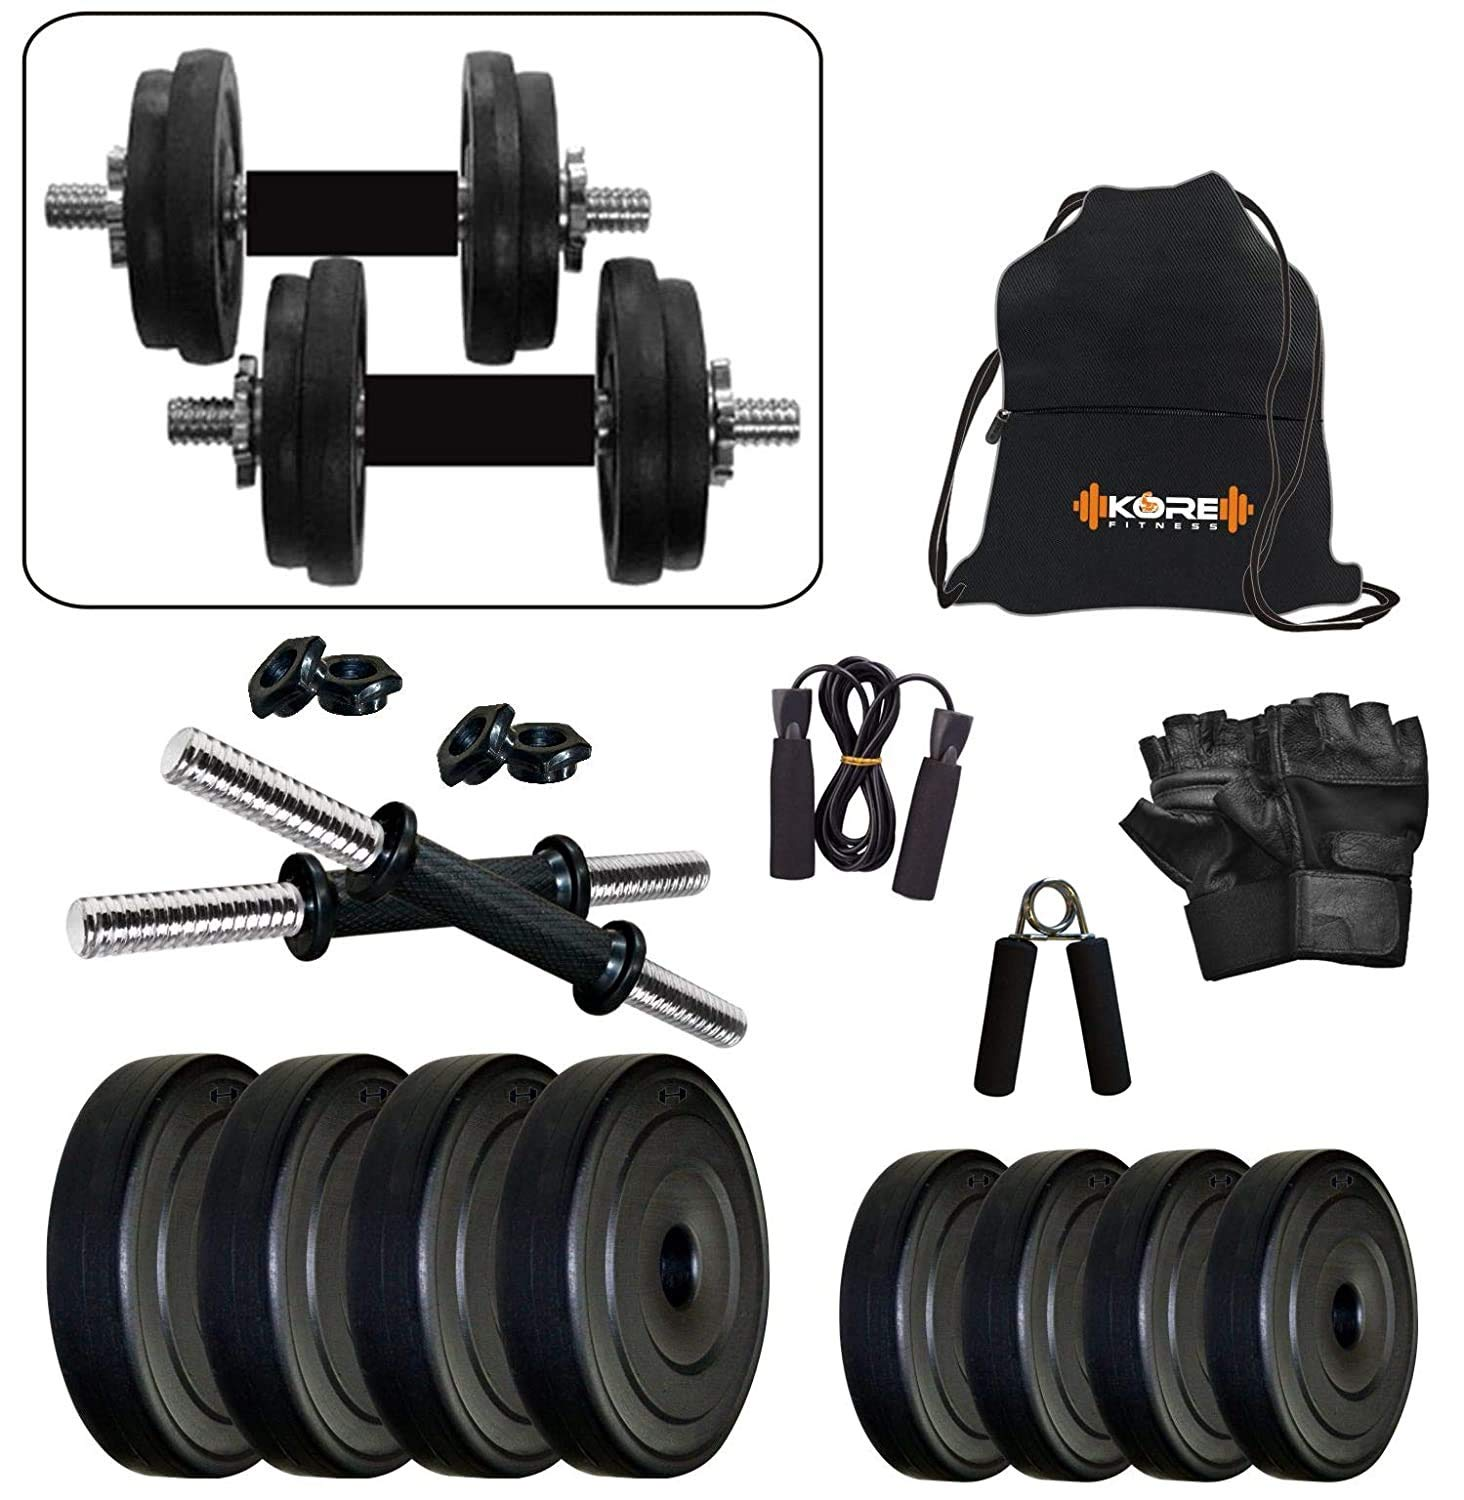 Kore PVC-DM Combo (4 Kg to 26 Kg) Home Gym and Fitness Kit with Gym Accessories